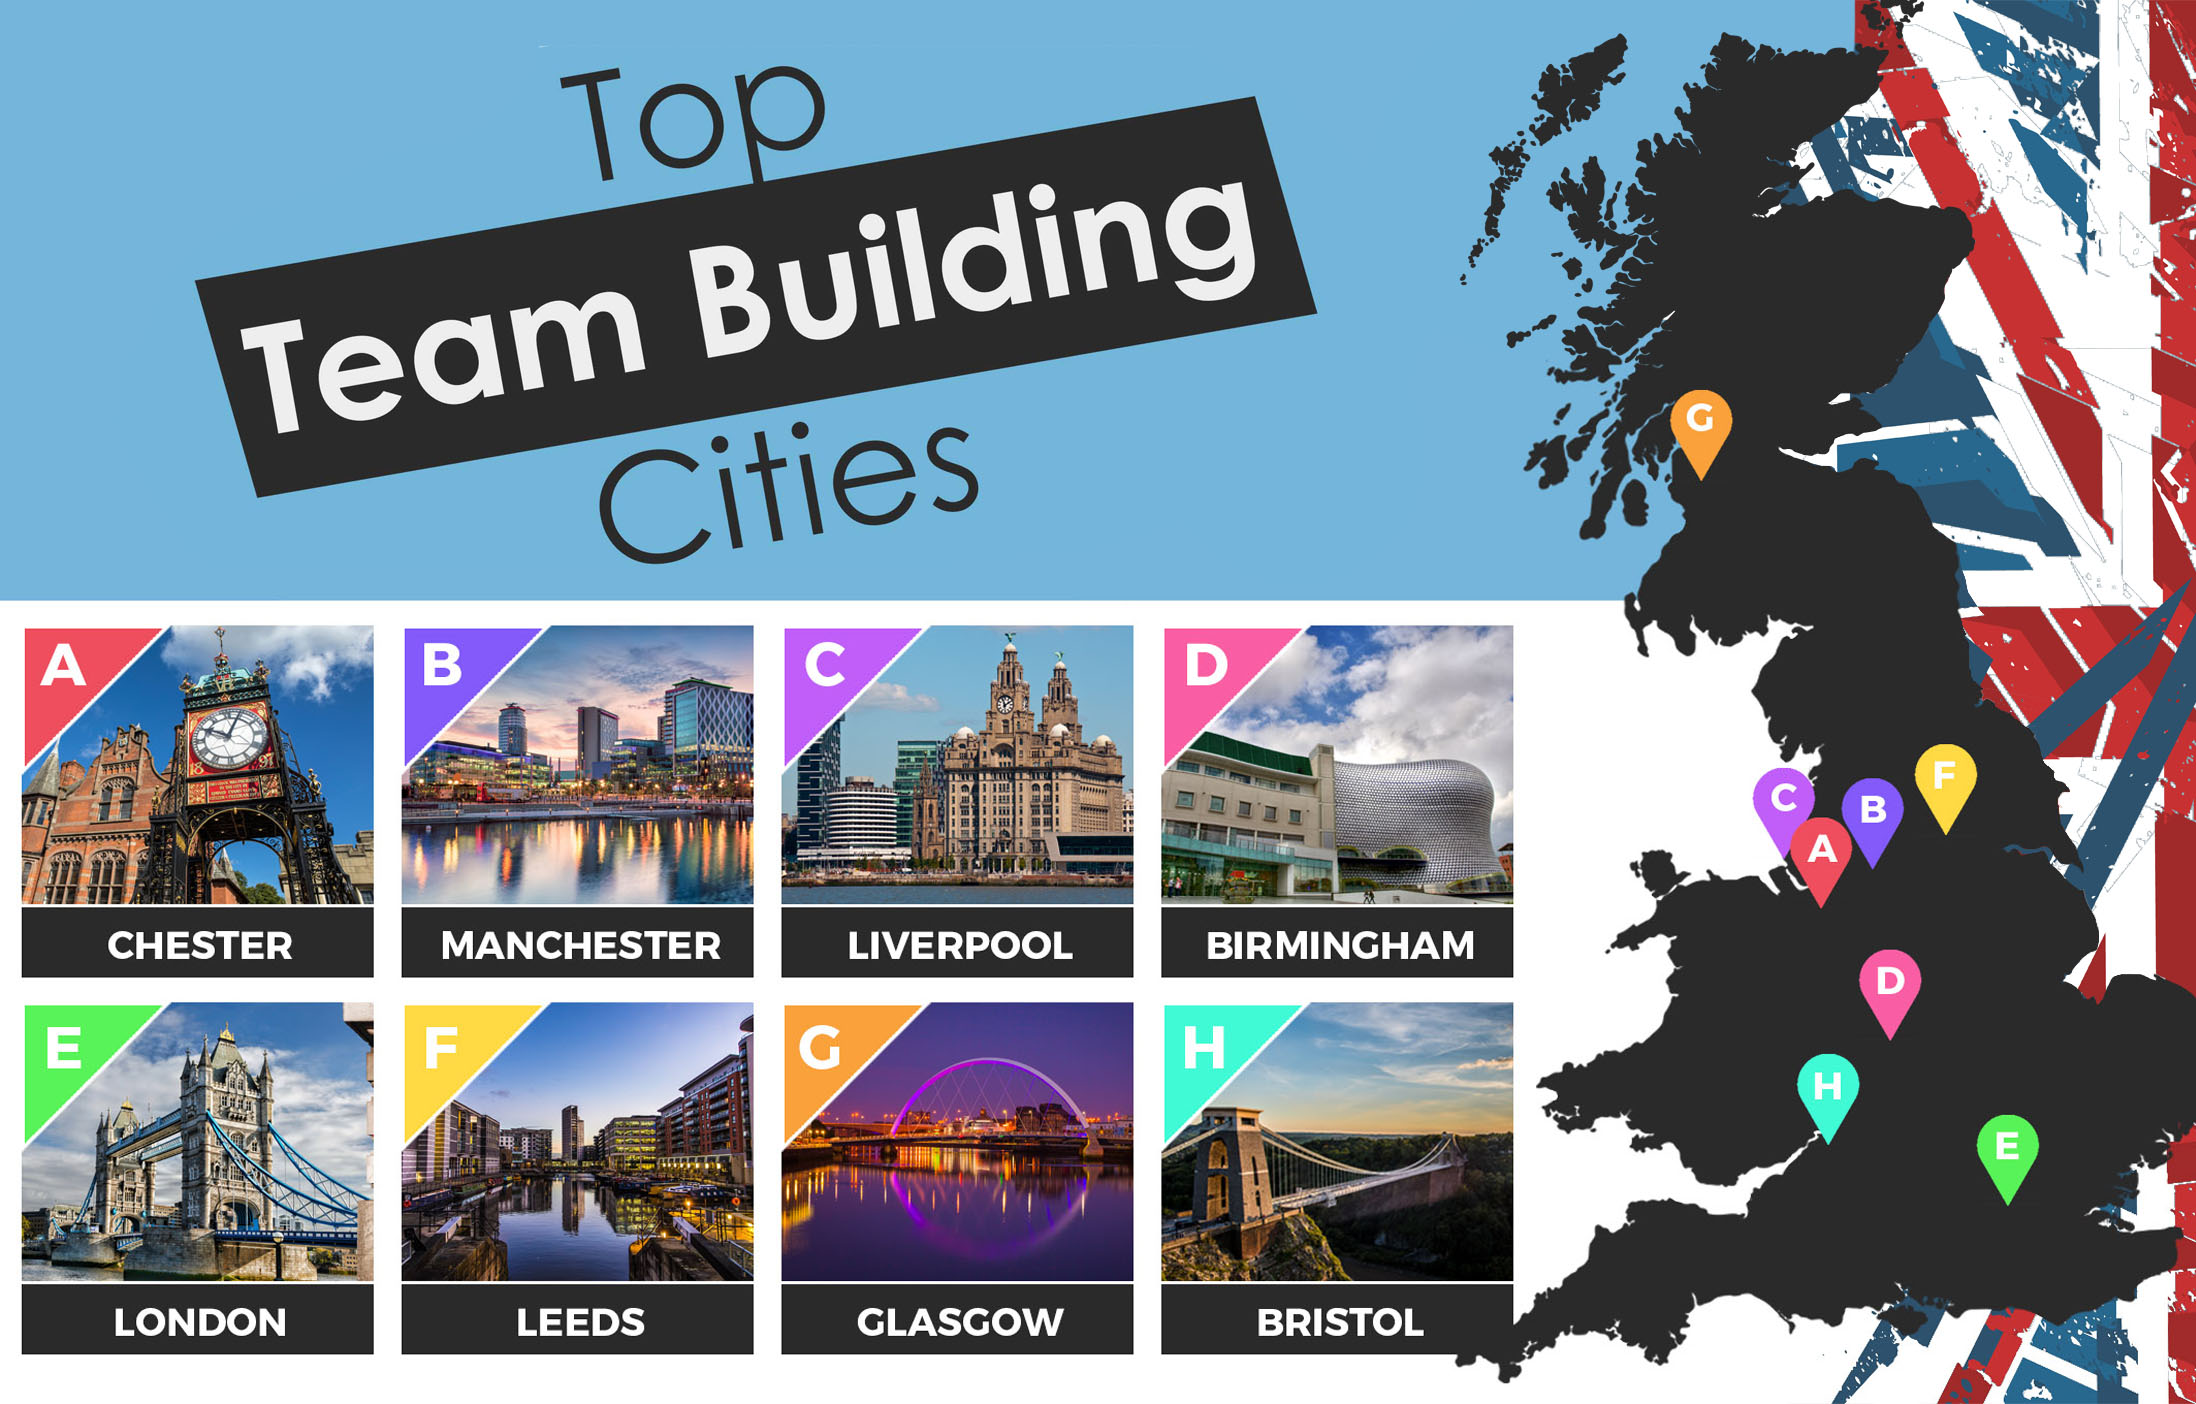 8 Most Popular Team Building Cities